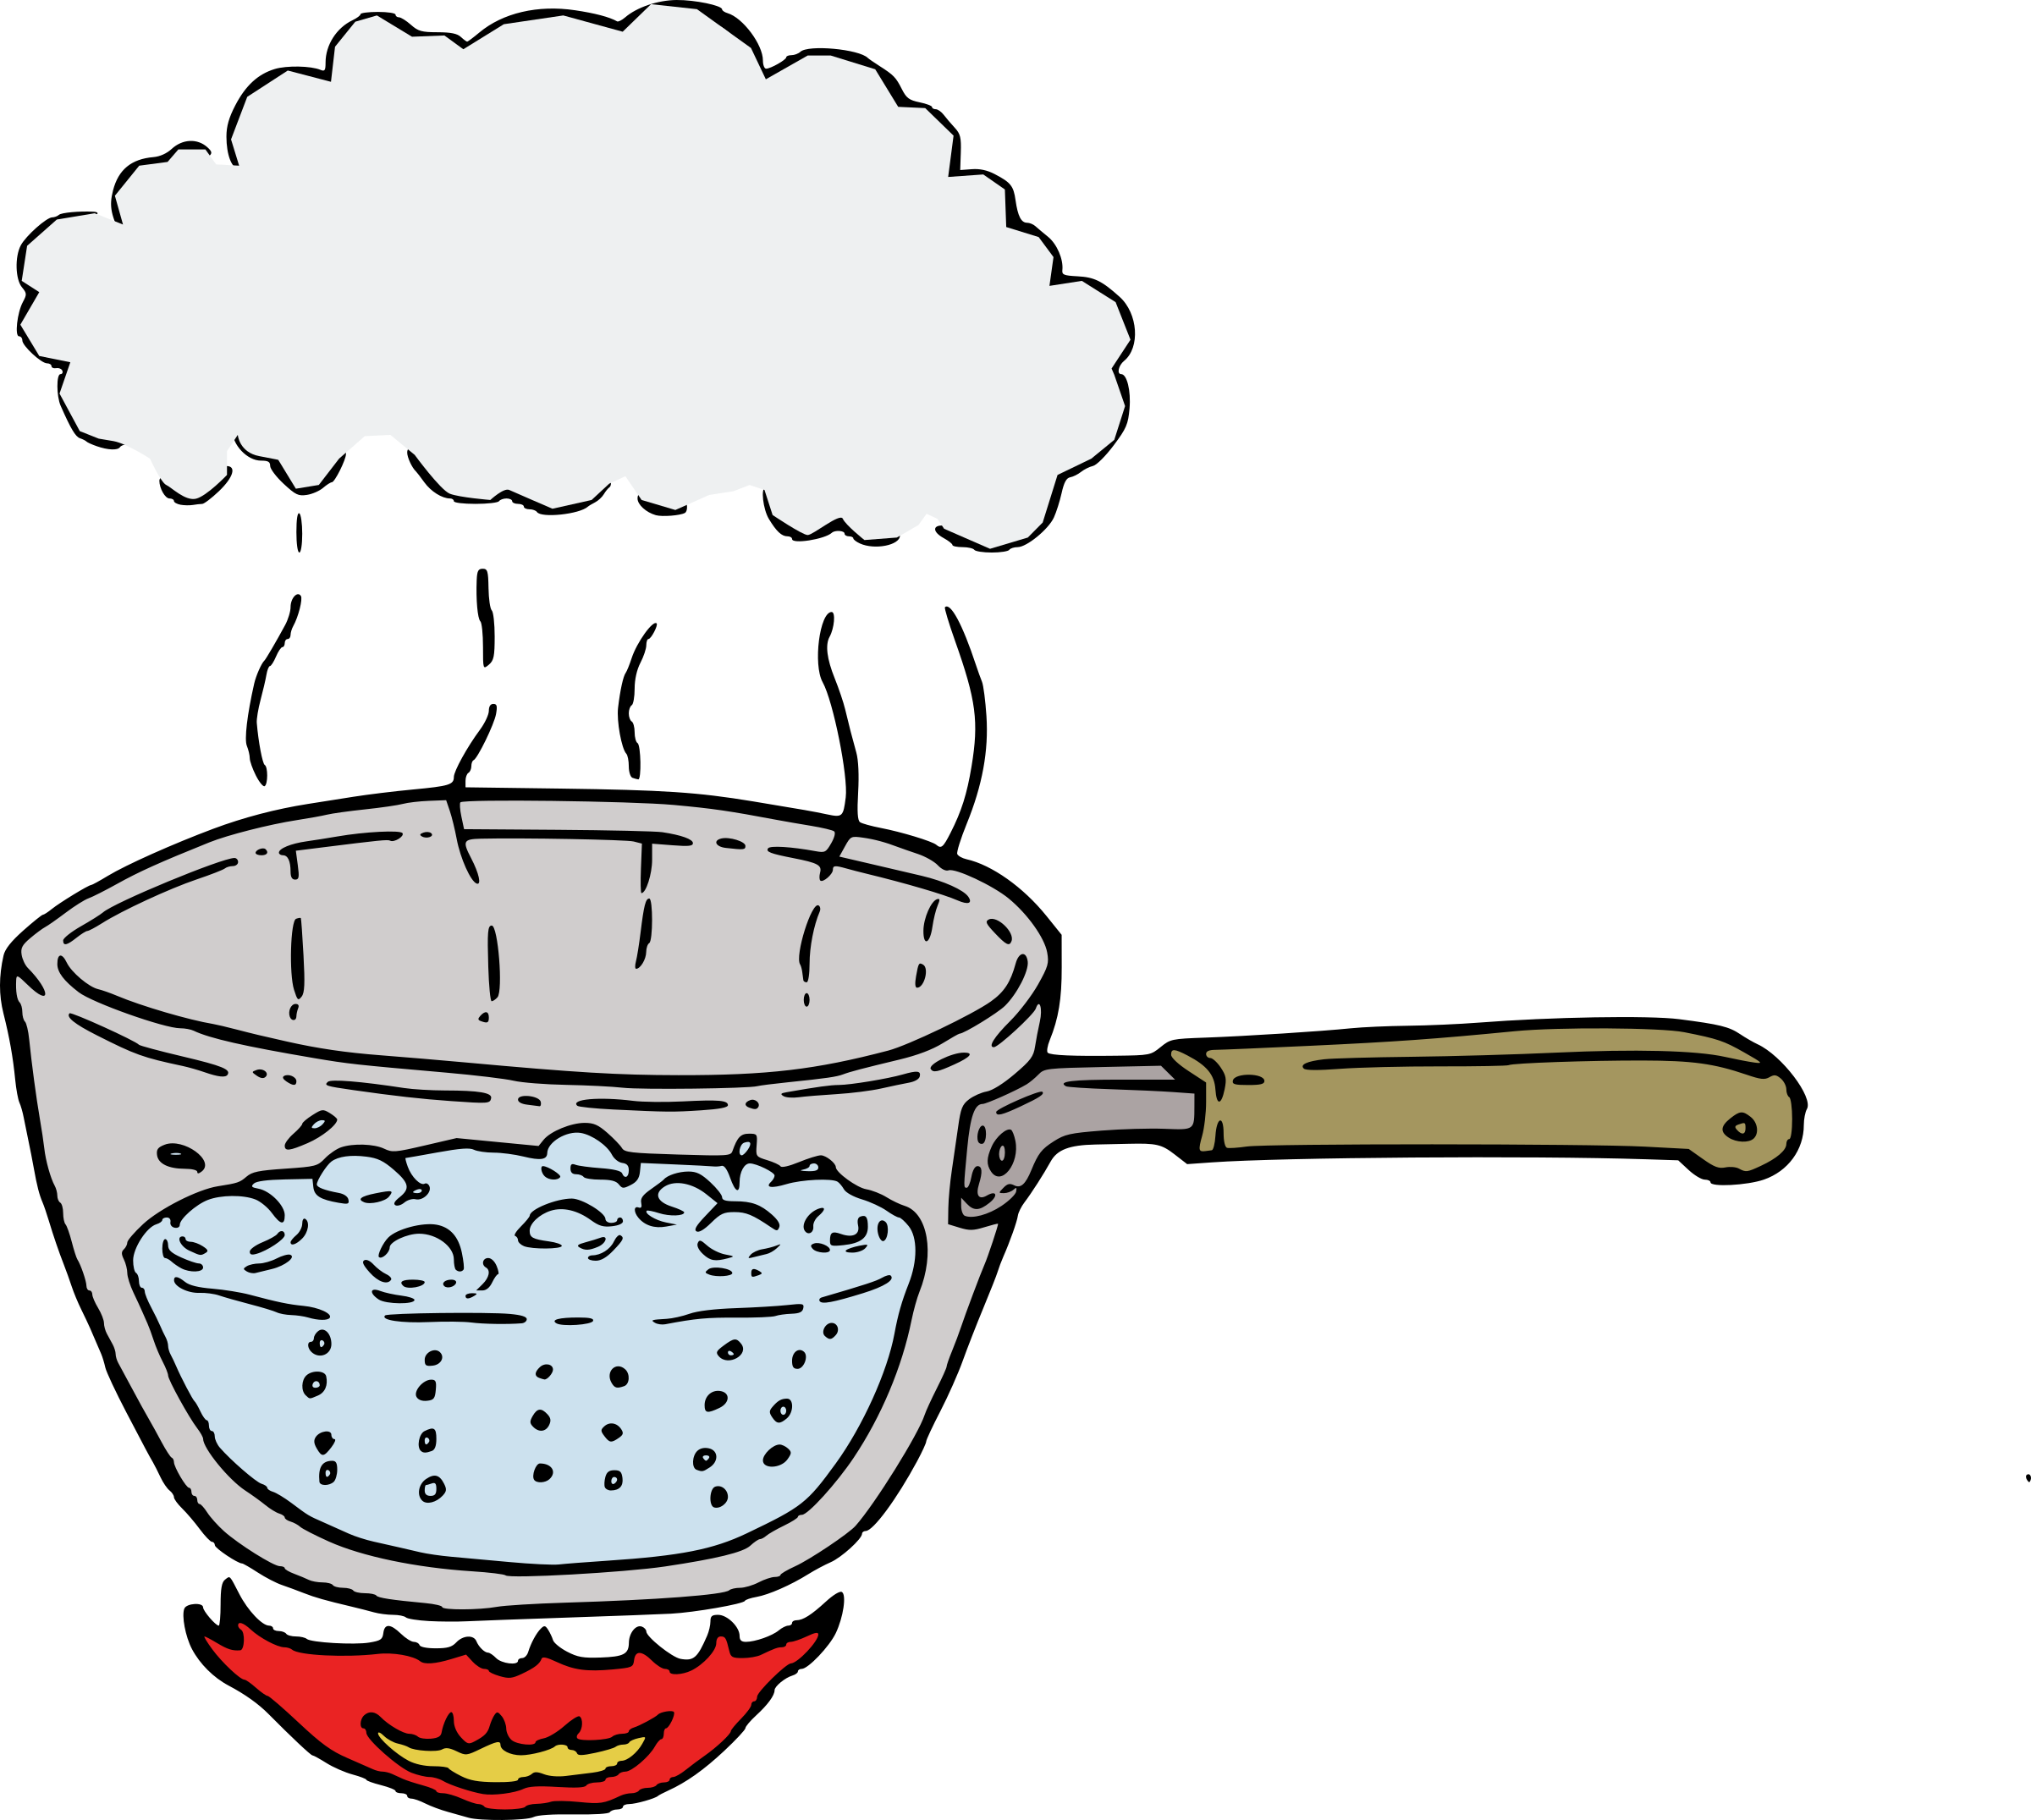 Evaporation drawing. Boiling water at getdrawings